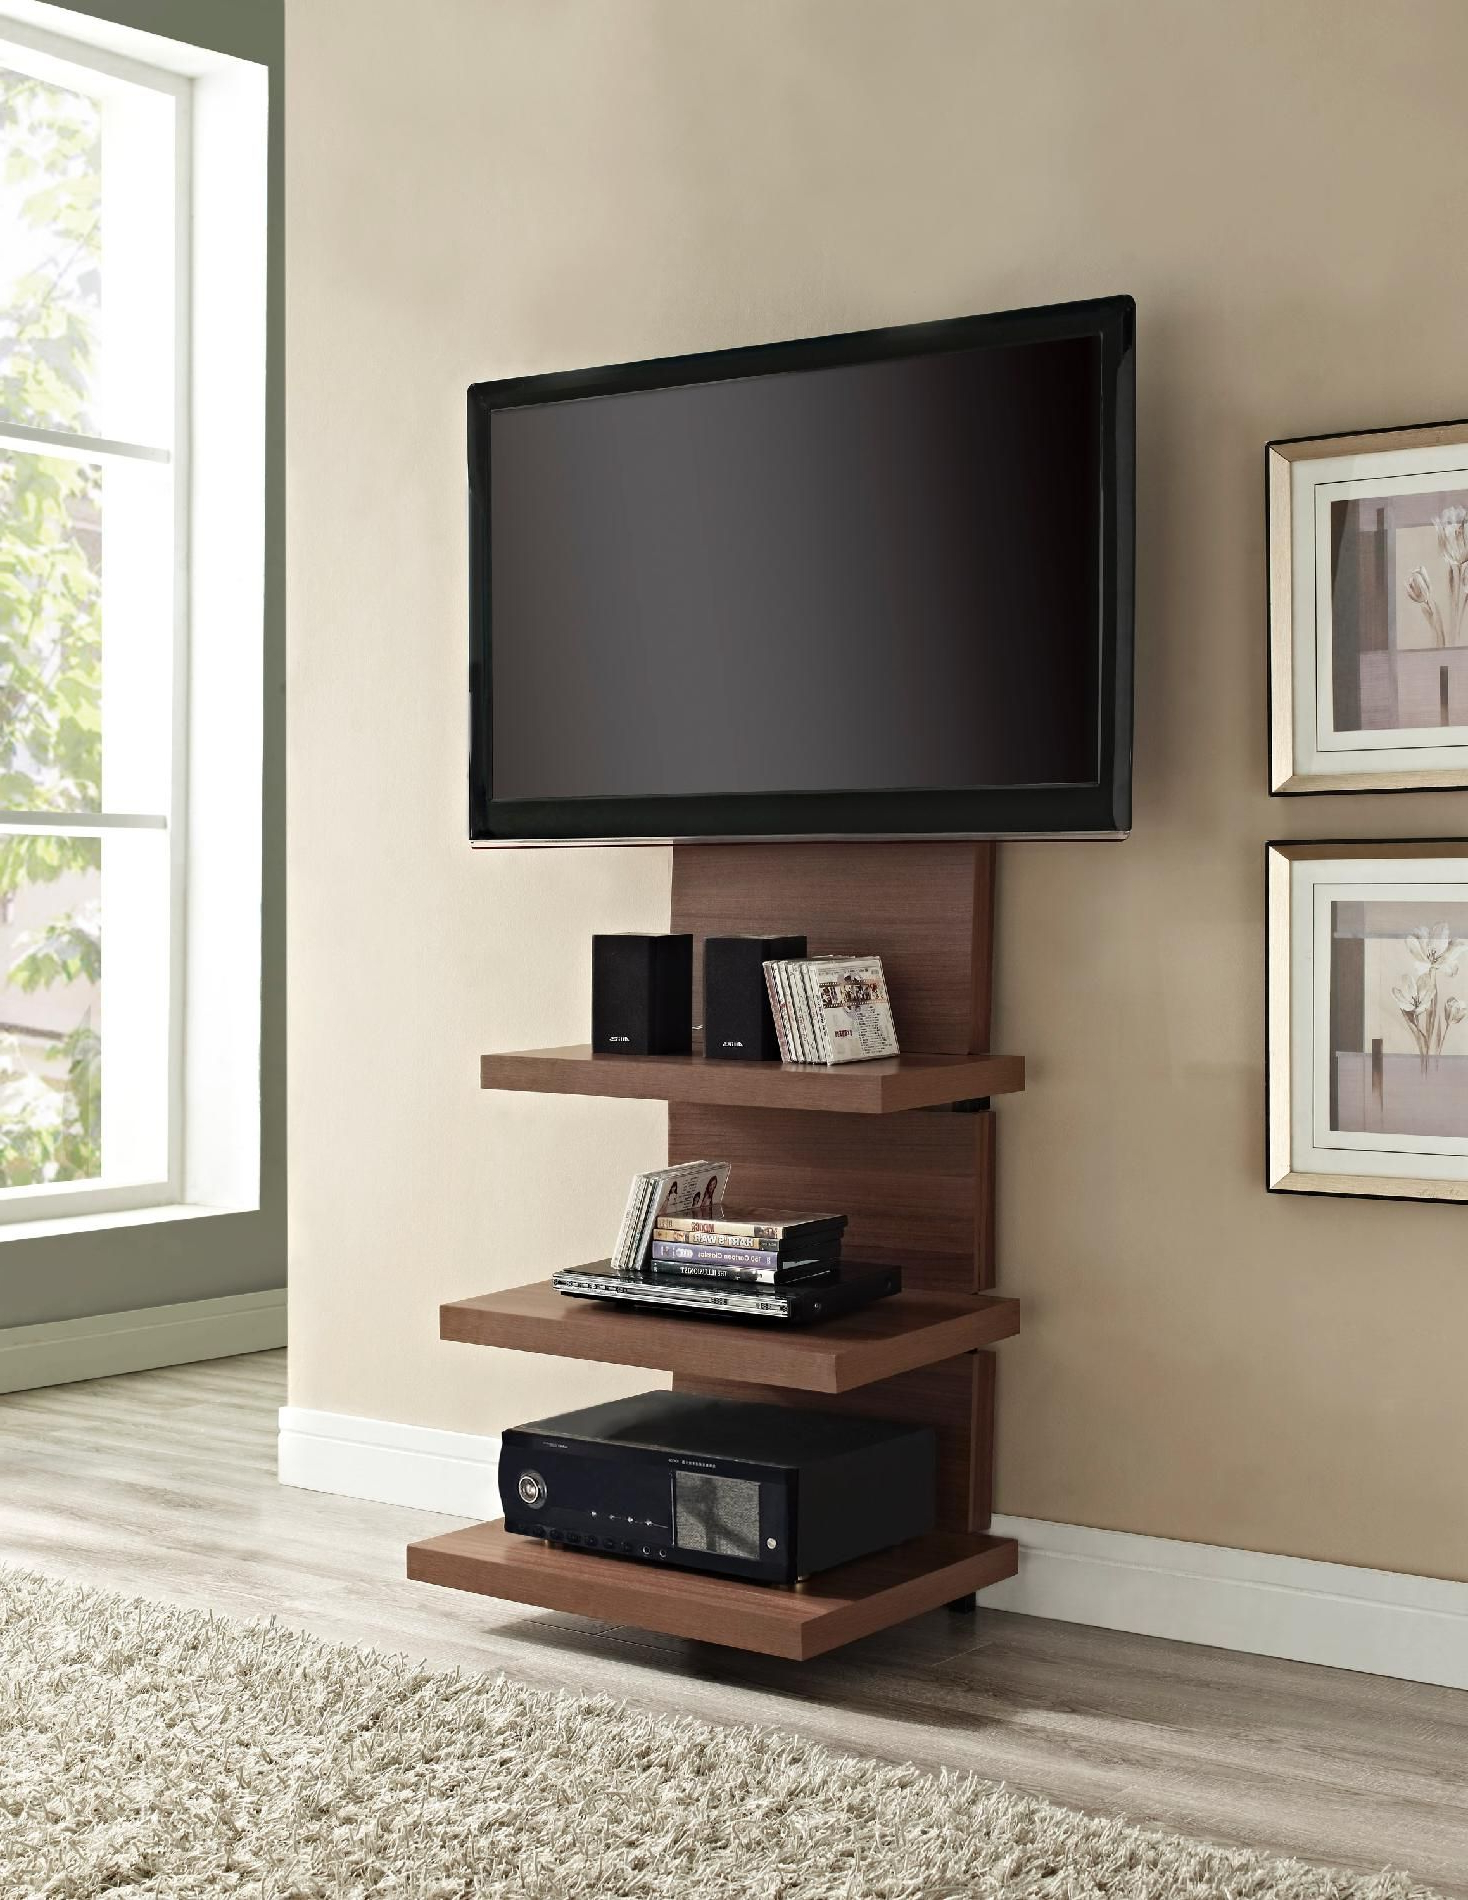 Stylish Tv Cabinets Regarding Famous 18 Chic And Modern Tv Wall Mount Ideas For Living Room (View 12 of 20)